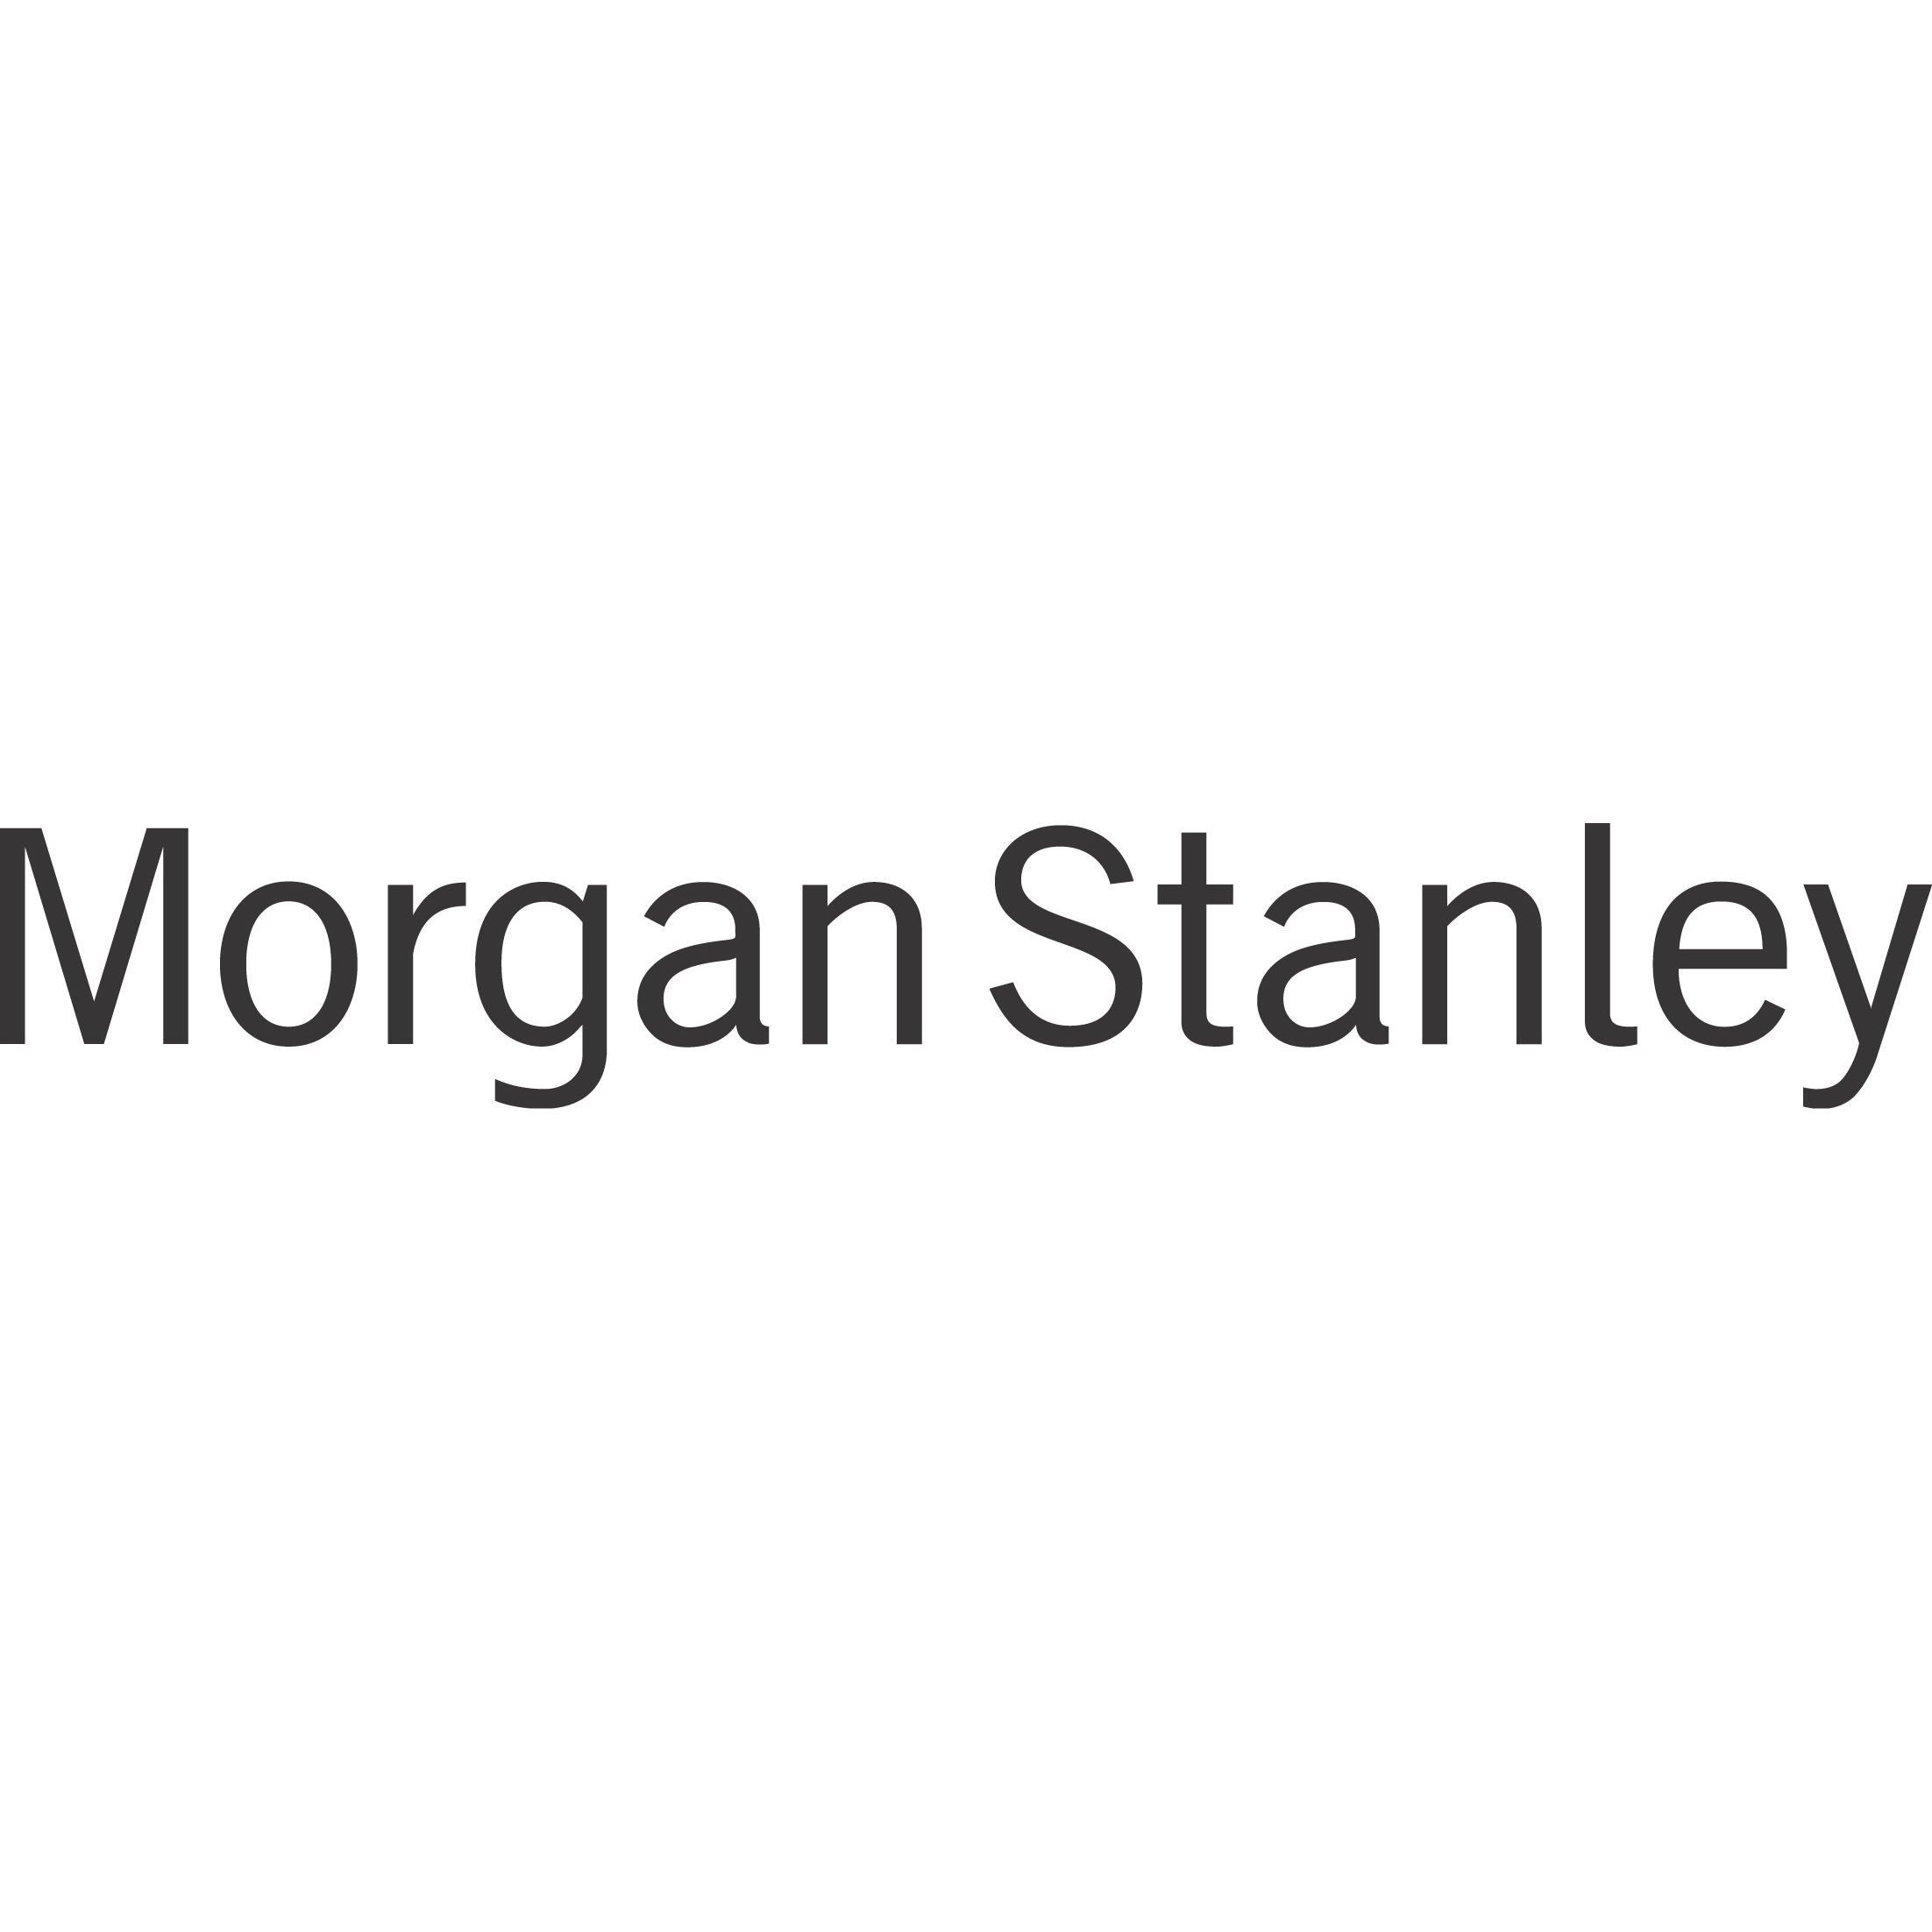 Kamran W. Hedjasi - Morgan Stanley | Financial Advisor in Pasadena,California